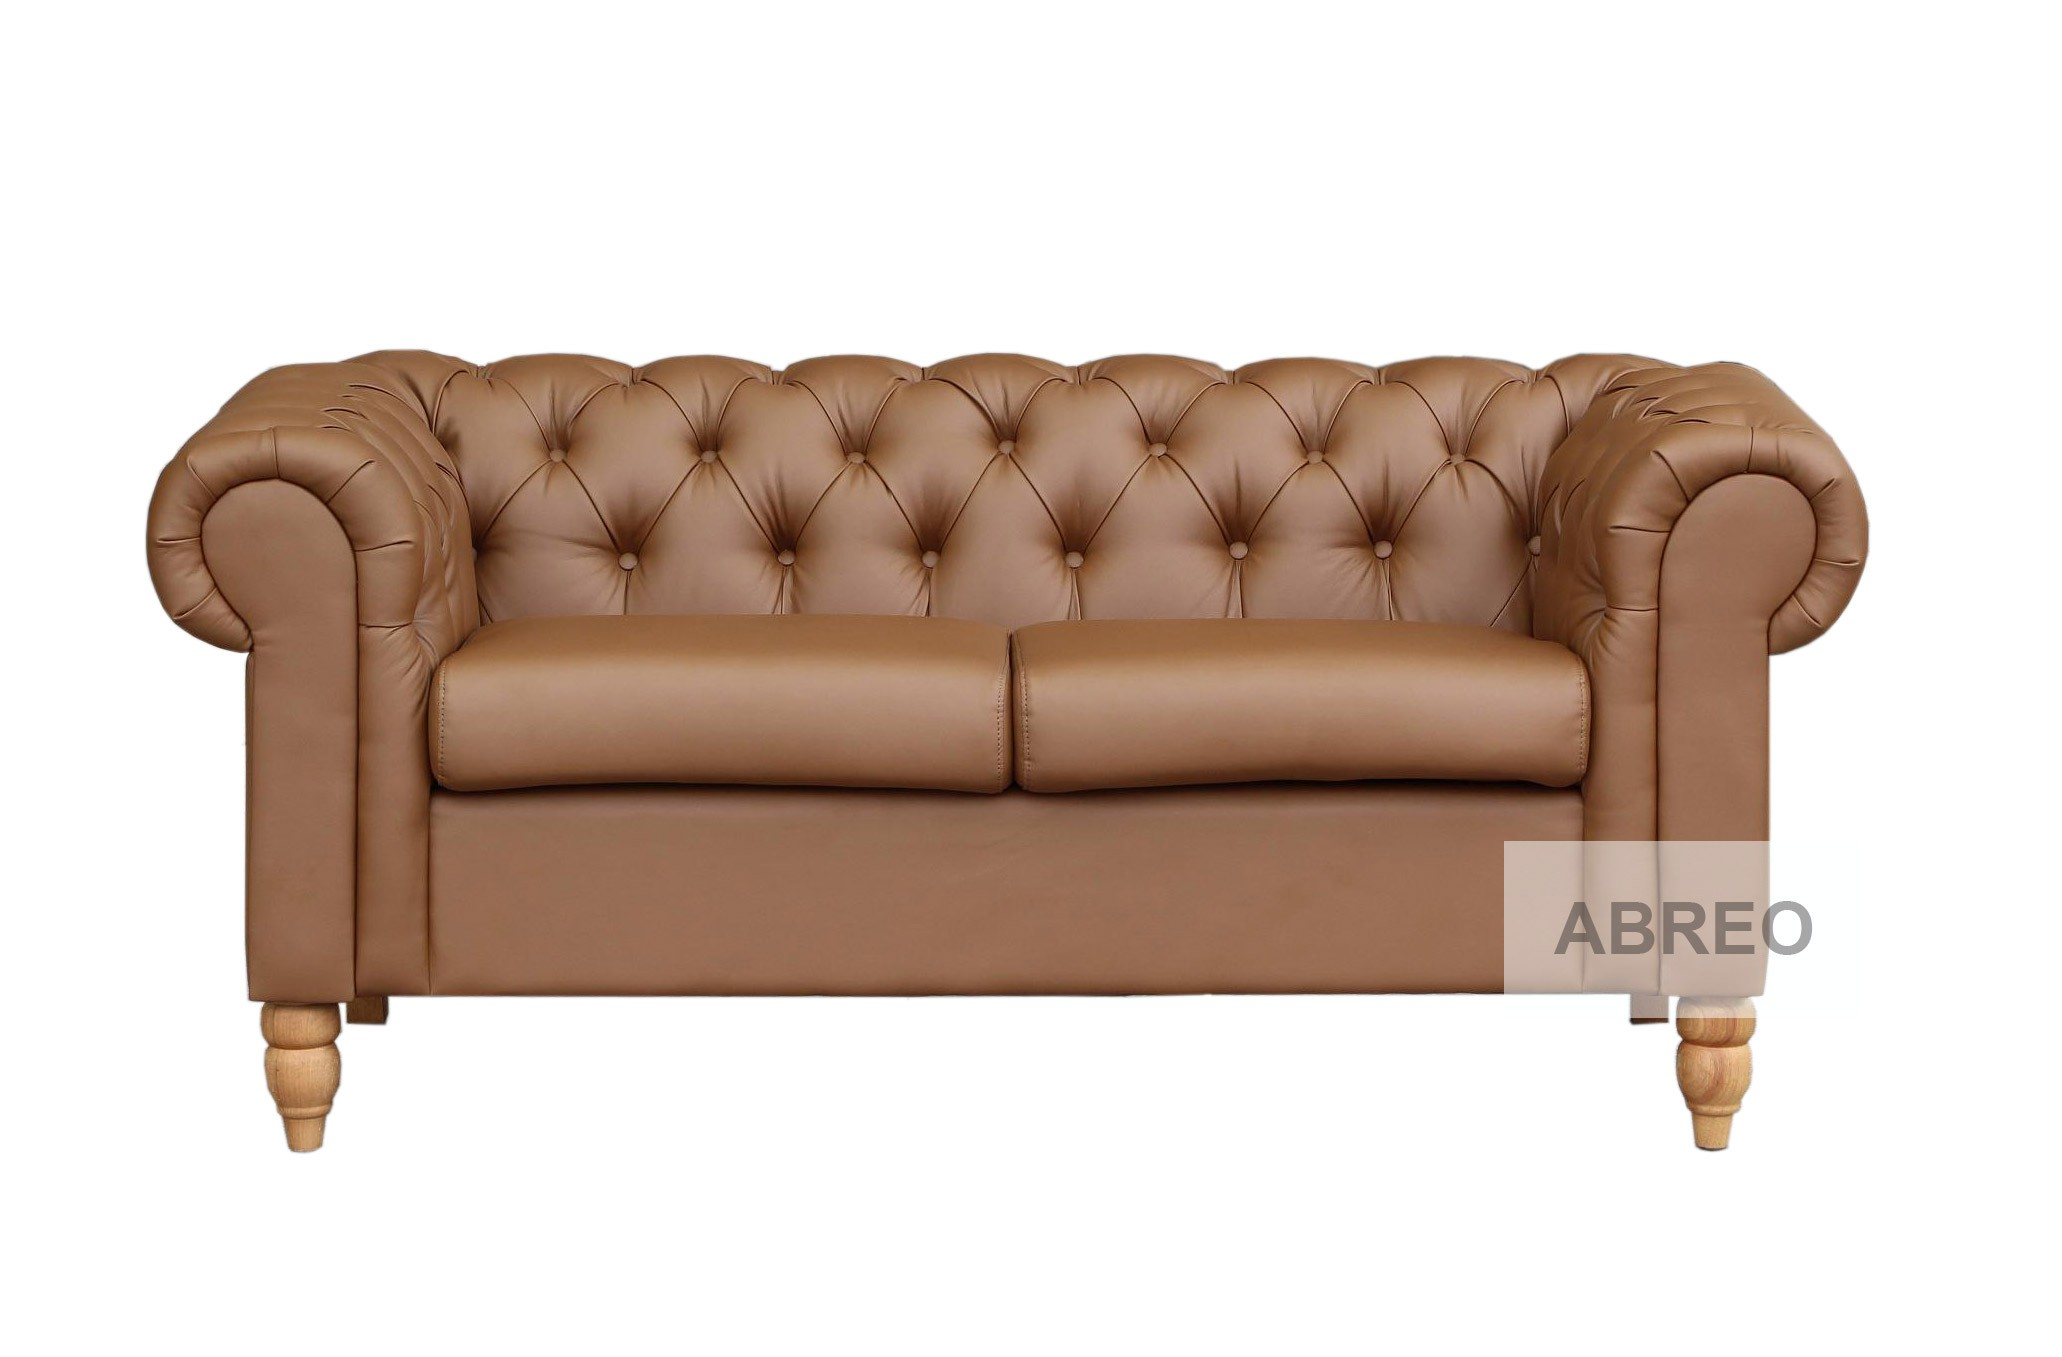 2 Seat Chesterfield Tan Brown Canterbury Chesterfield Sofas